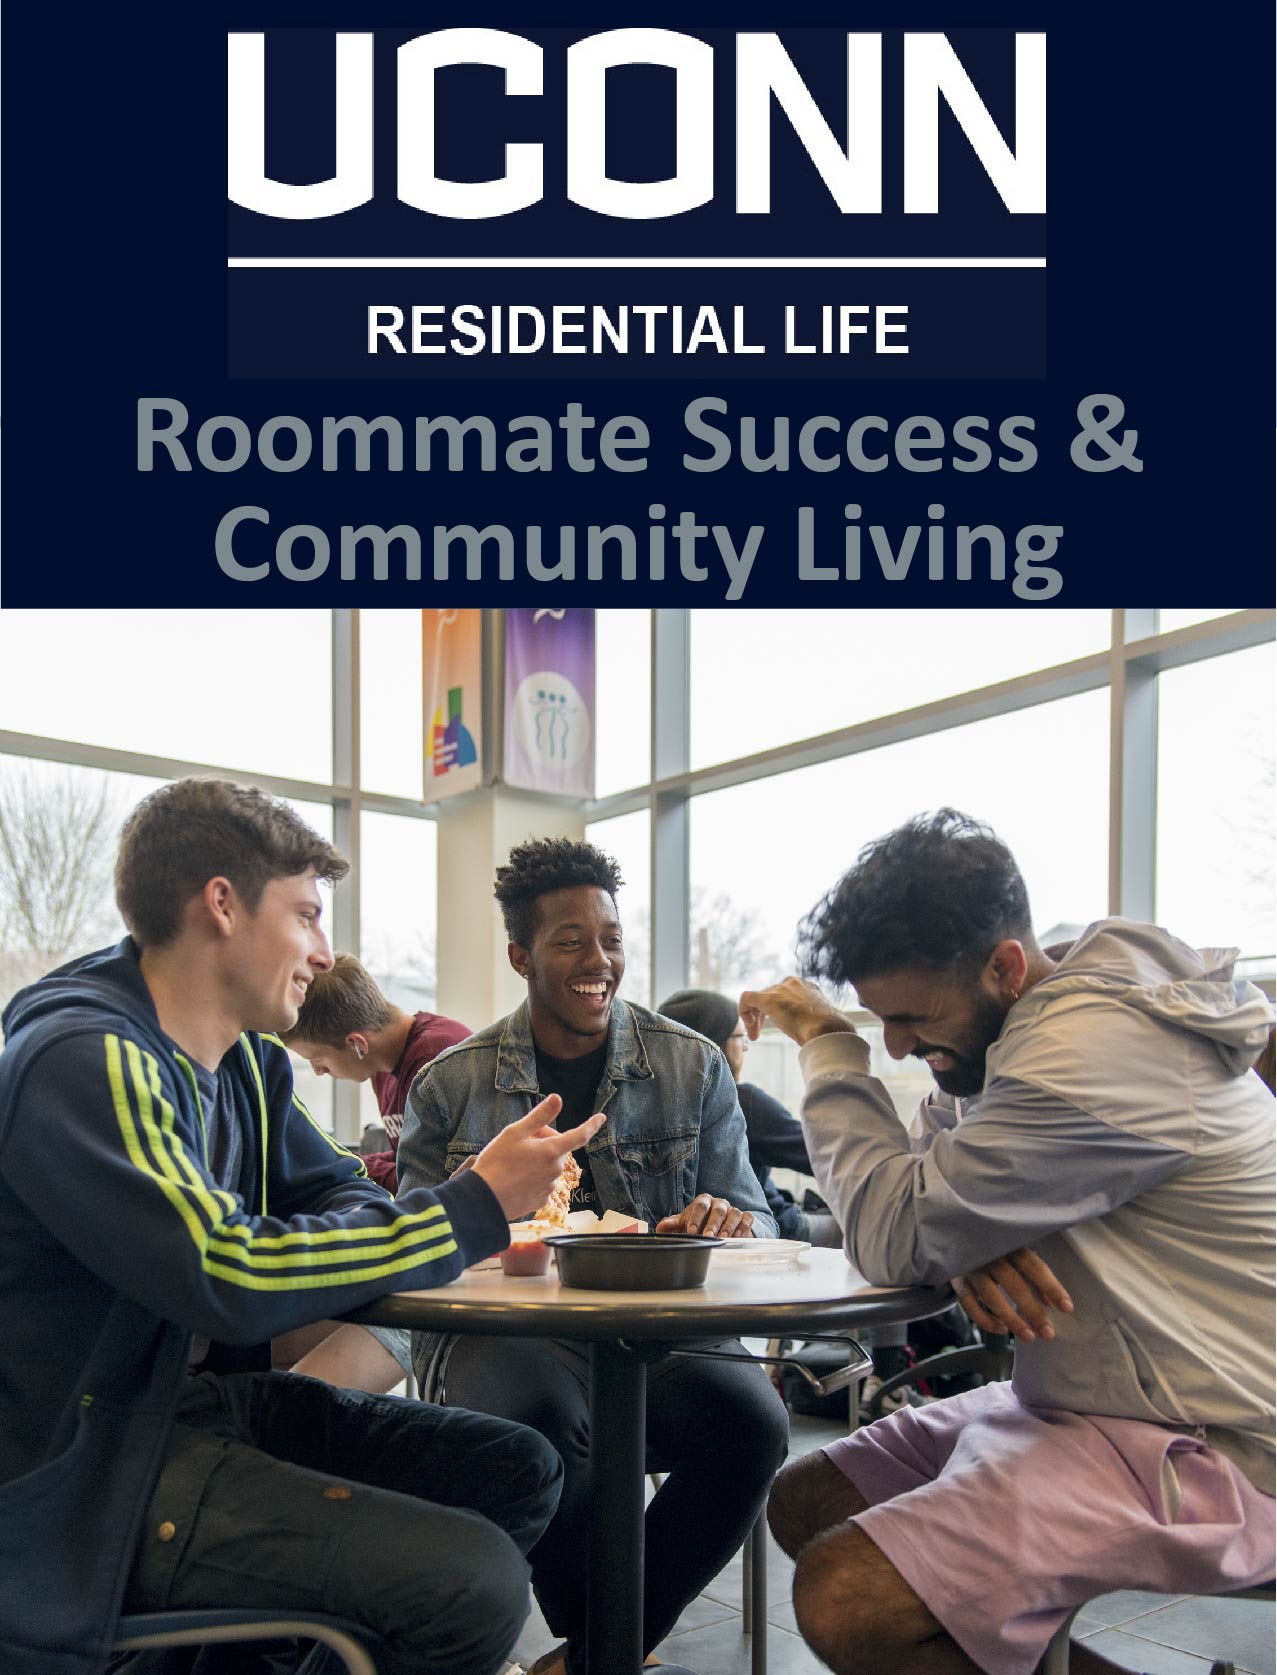 Roommate Success & Community Living